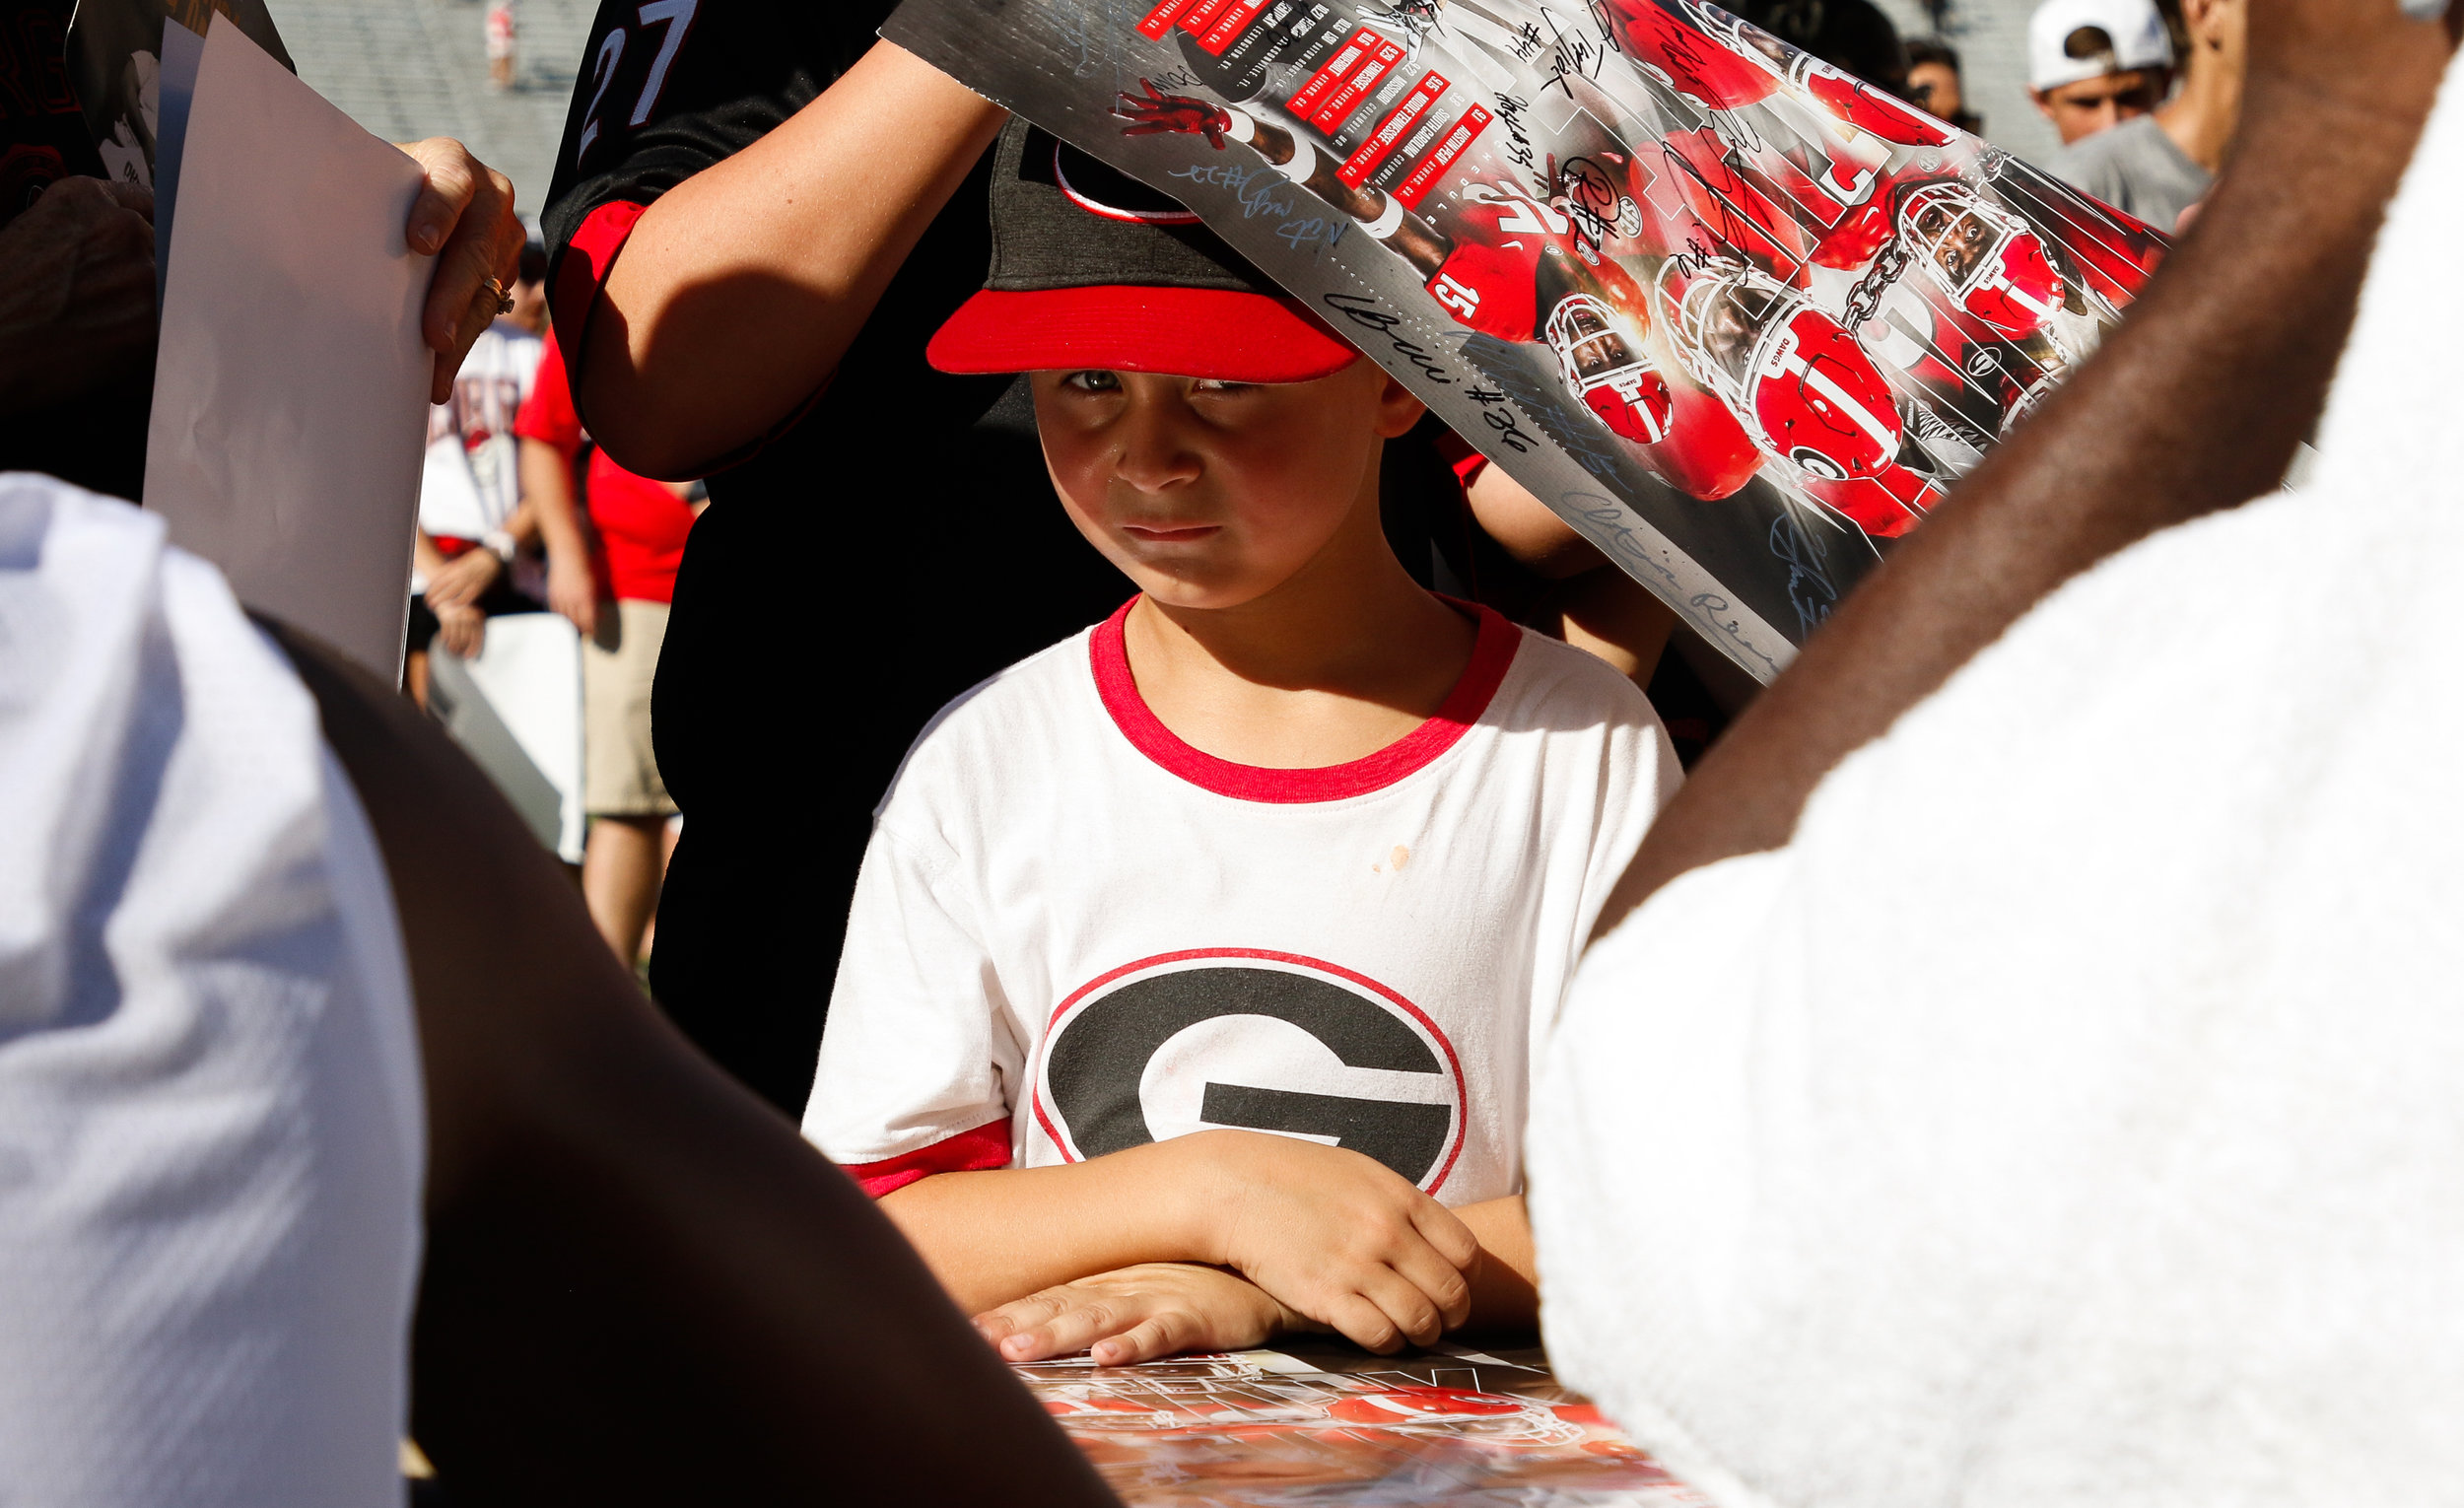 A young fan waits to have his poster signed by members of the Georgia football team on Fan Day in Sanford Stadium in Athens, Ga., on Saturday, Aug. 4, 2018.